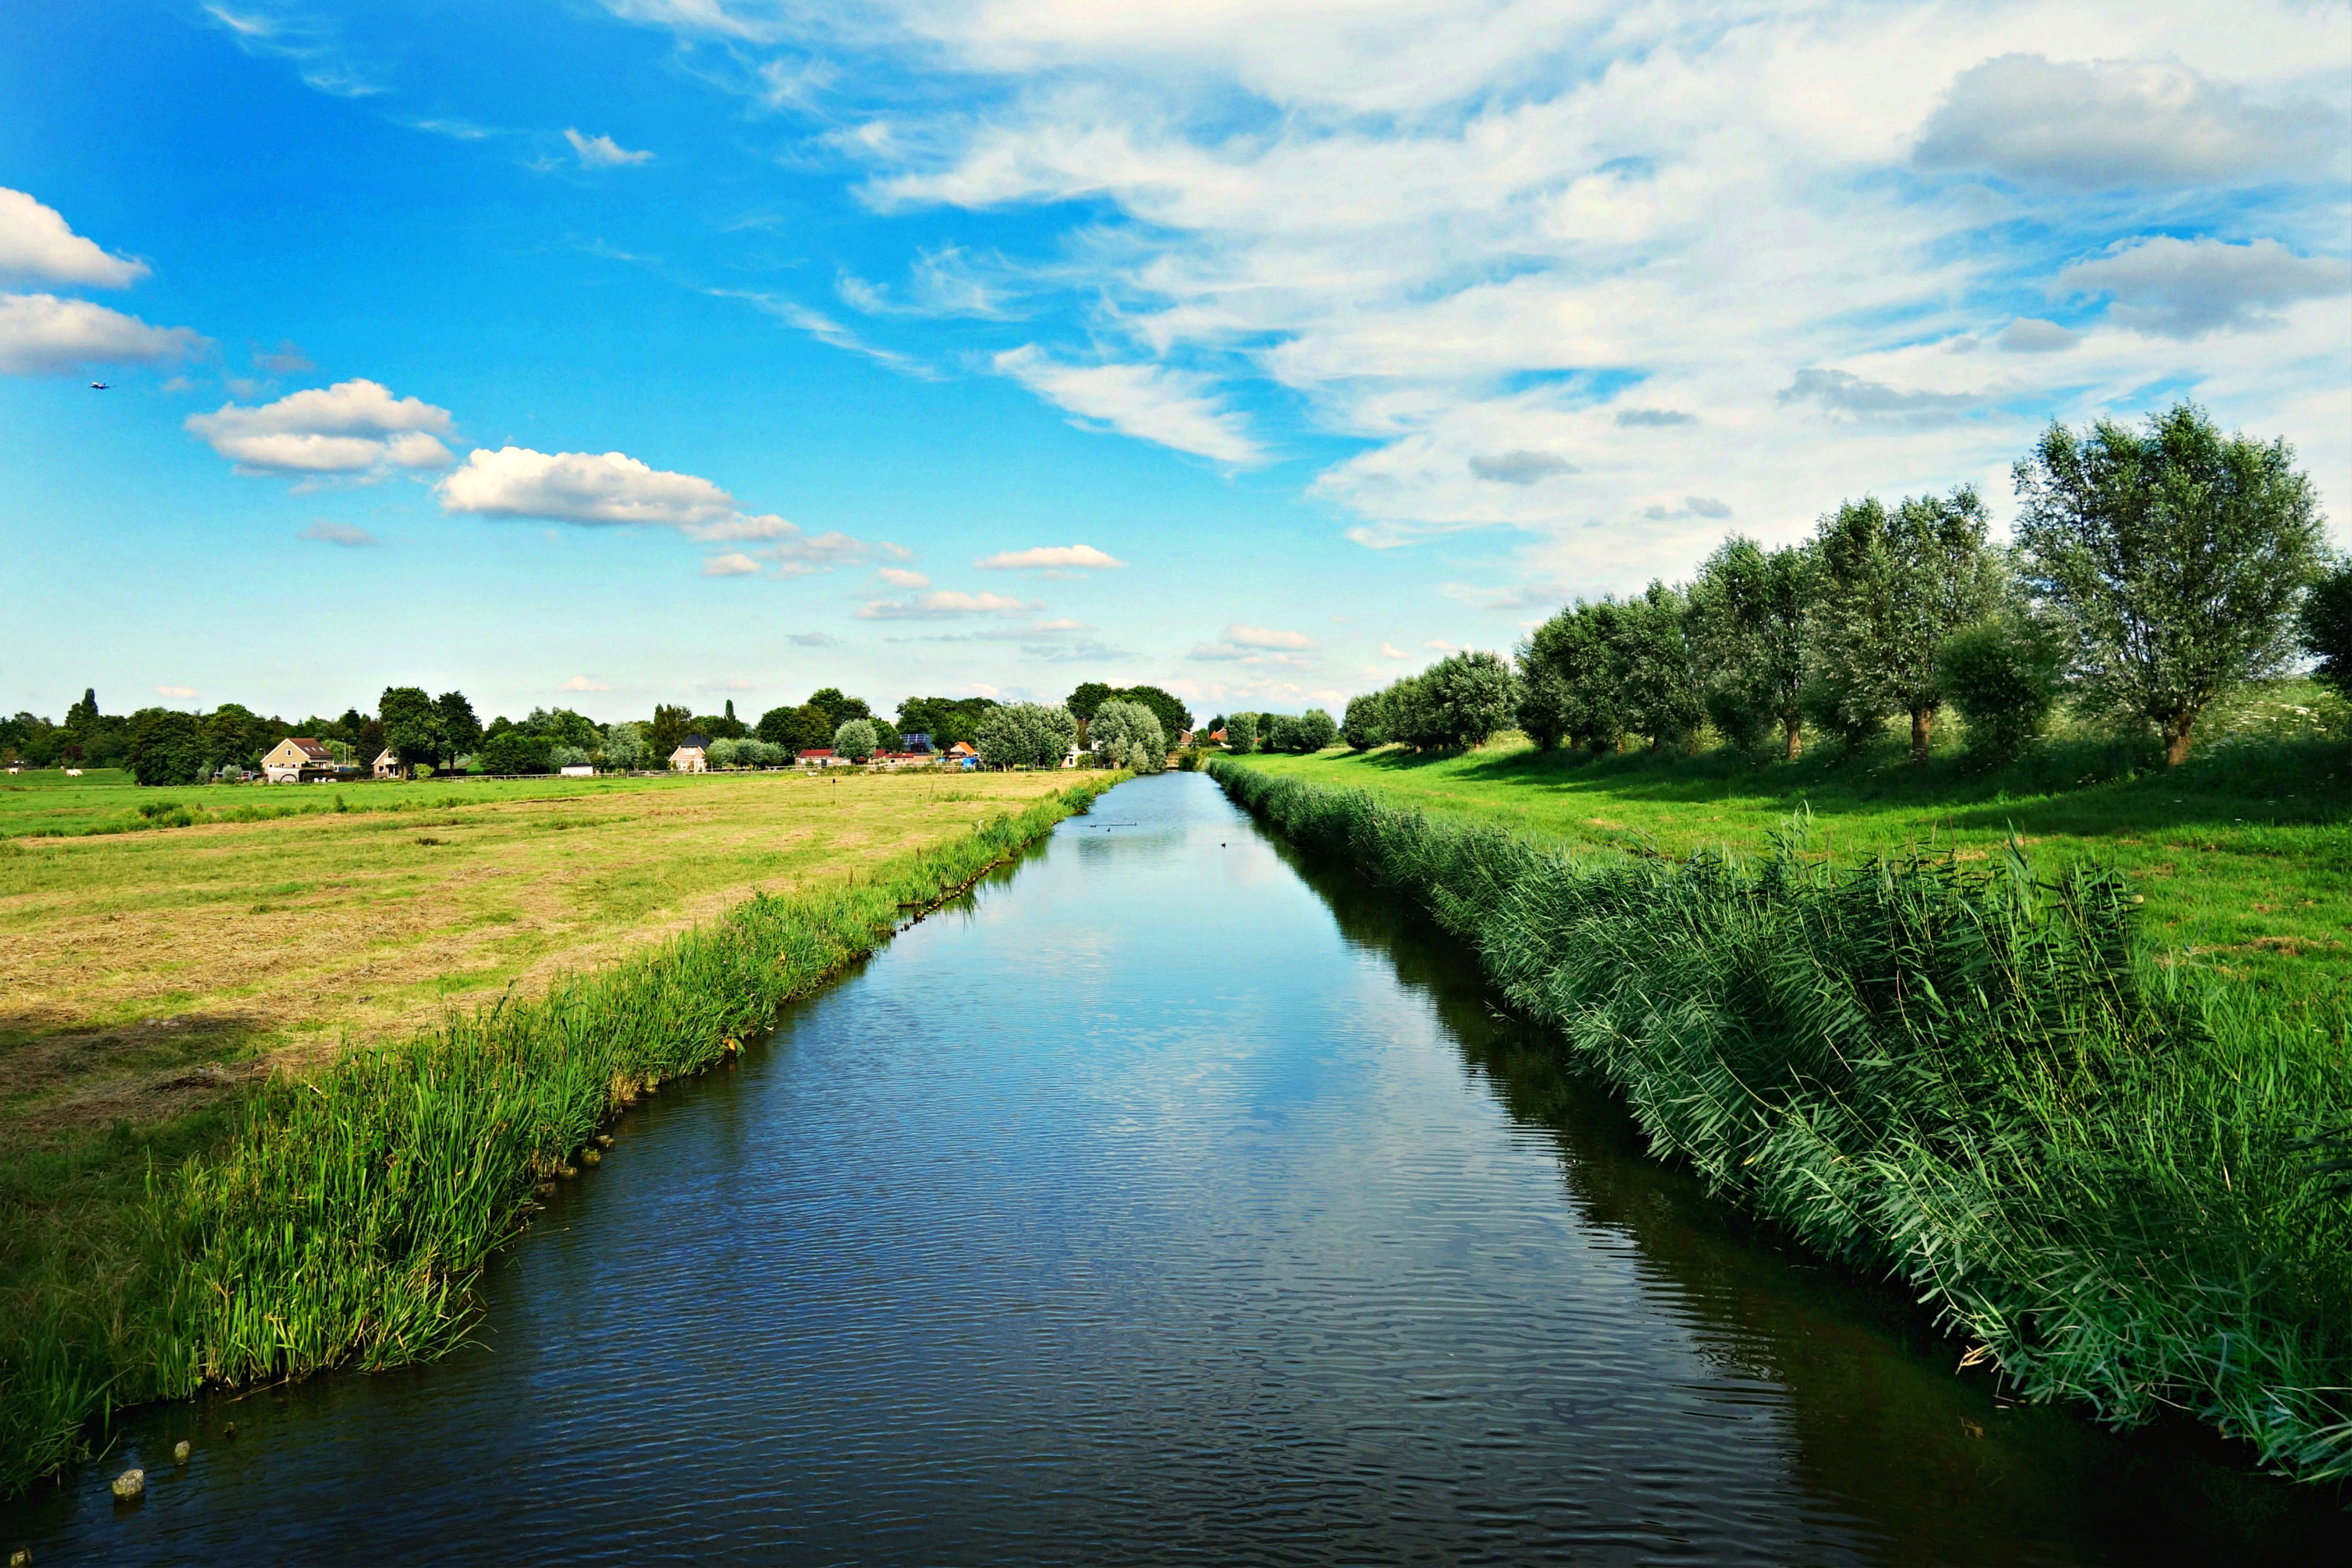 Free stock photo of countryside, rural, Holland, Dutch landscape